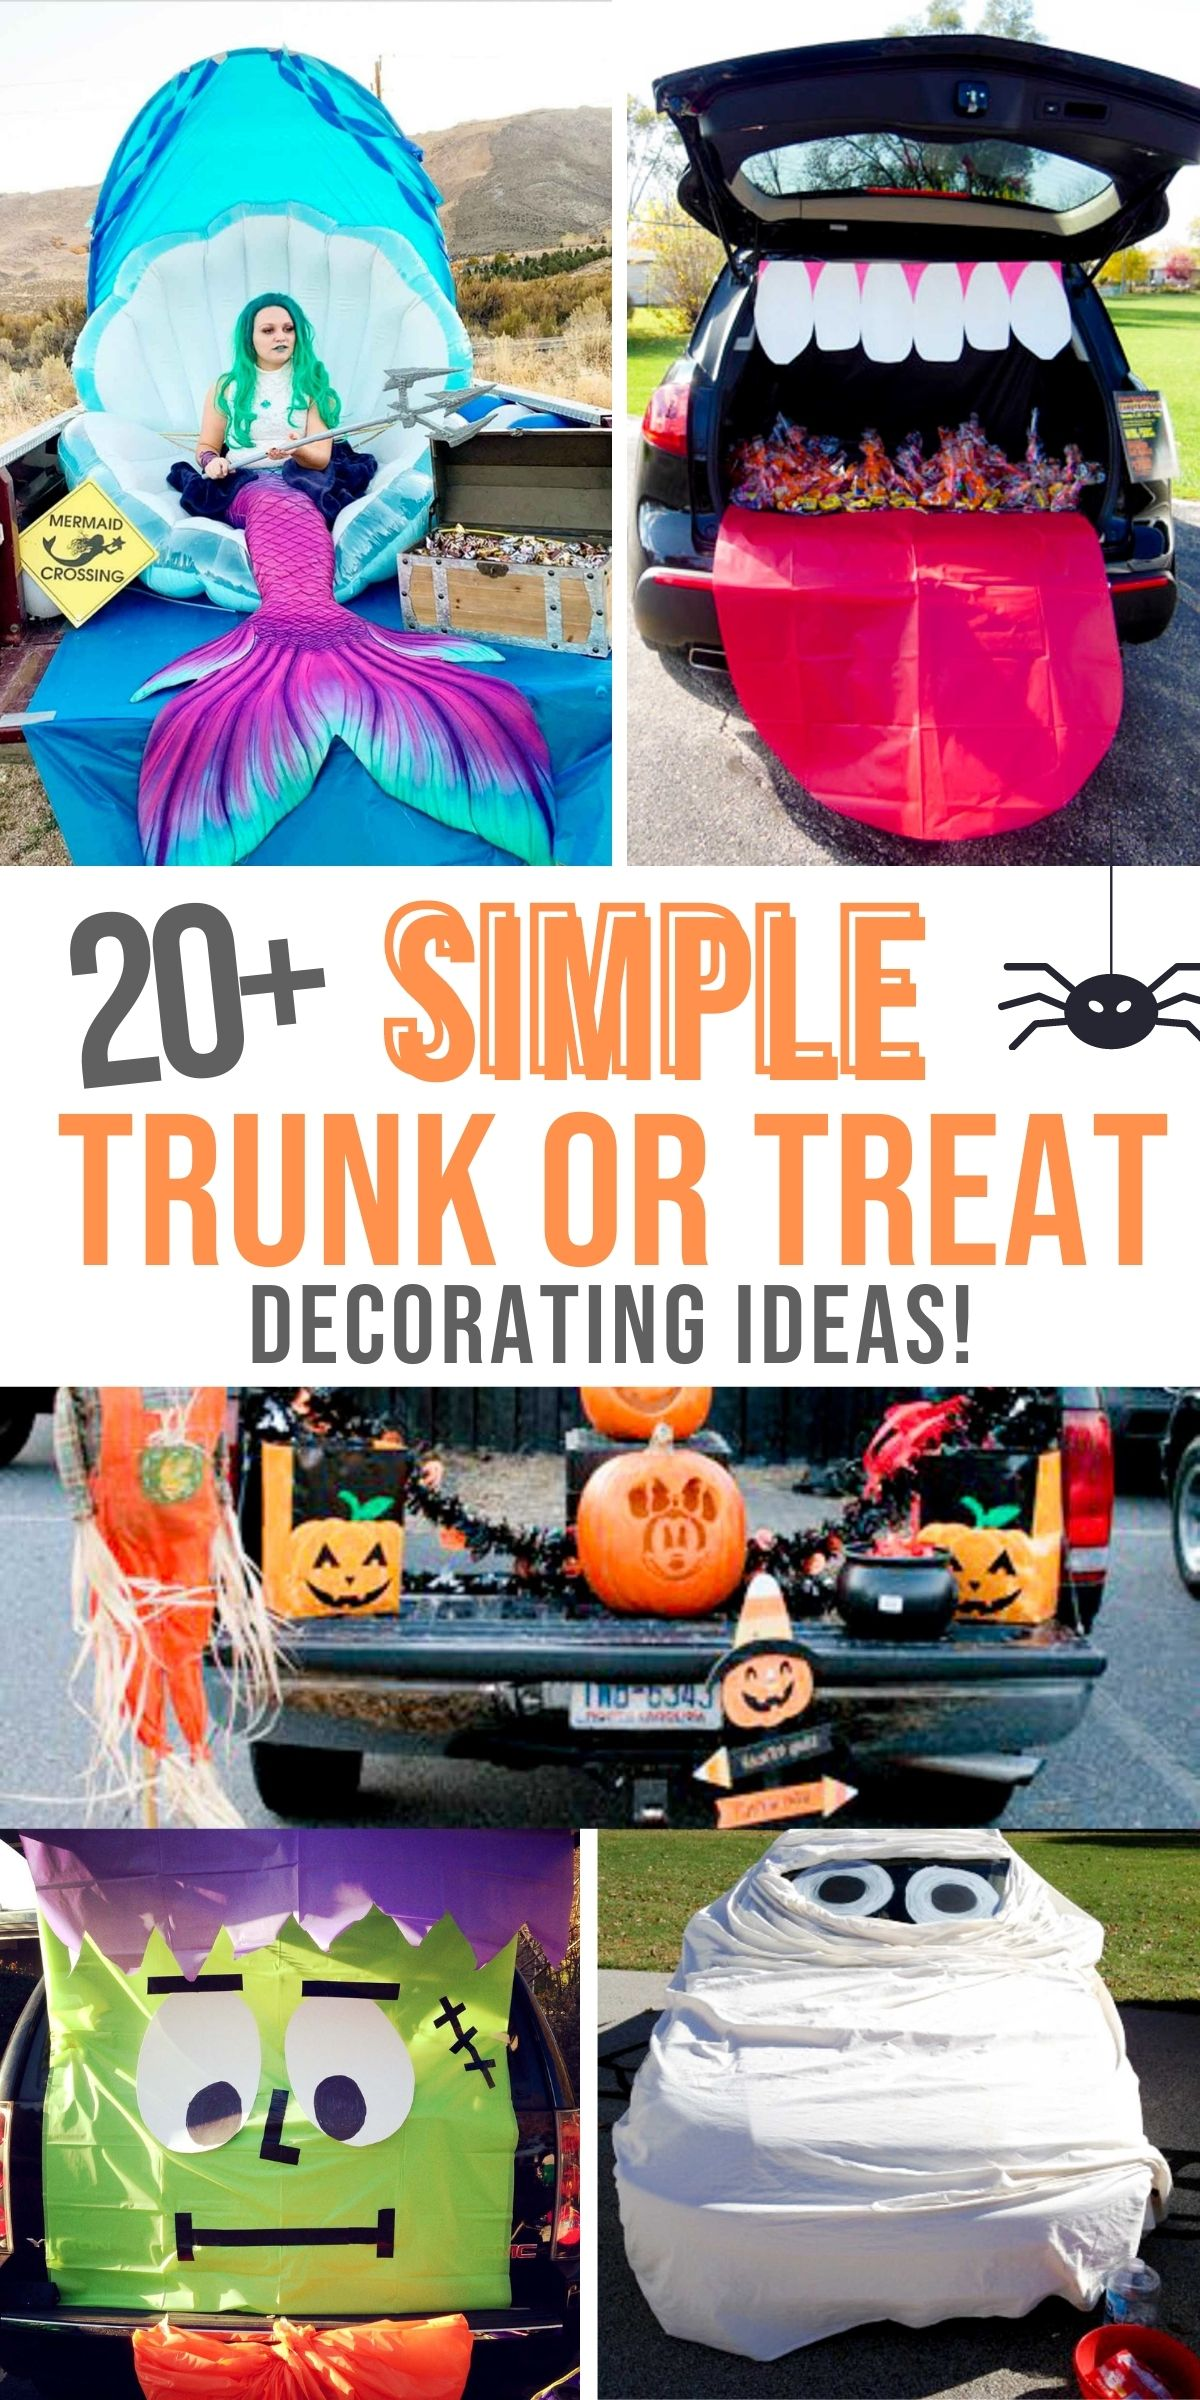 Trunk or Treat decorating ideas including a mermaid in the back of a trunk, a trunk of a black car with a red tongue hanging out and white teeth,  a car wrapped like a mummy, a car decorated like frankenstein and a truck bed decorated with pumpkins.